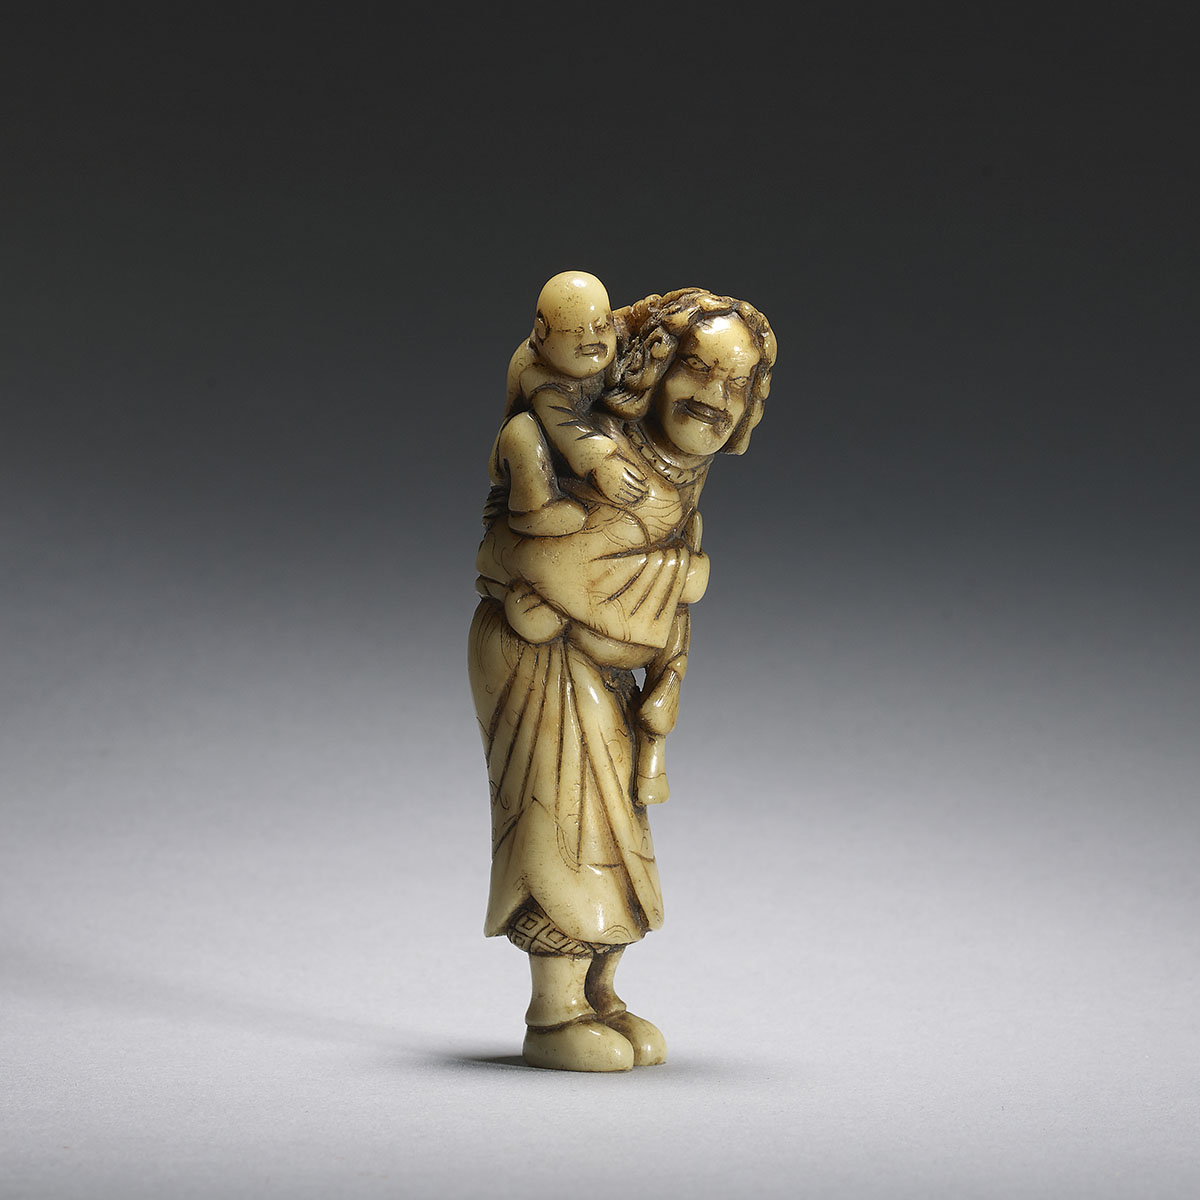 Stag antler netsuke of a Dutchman and boy